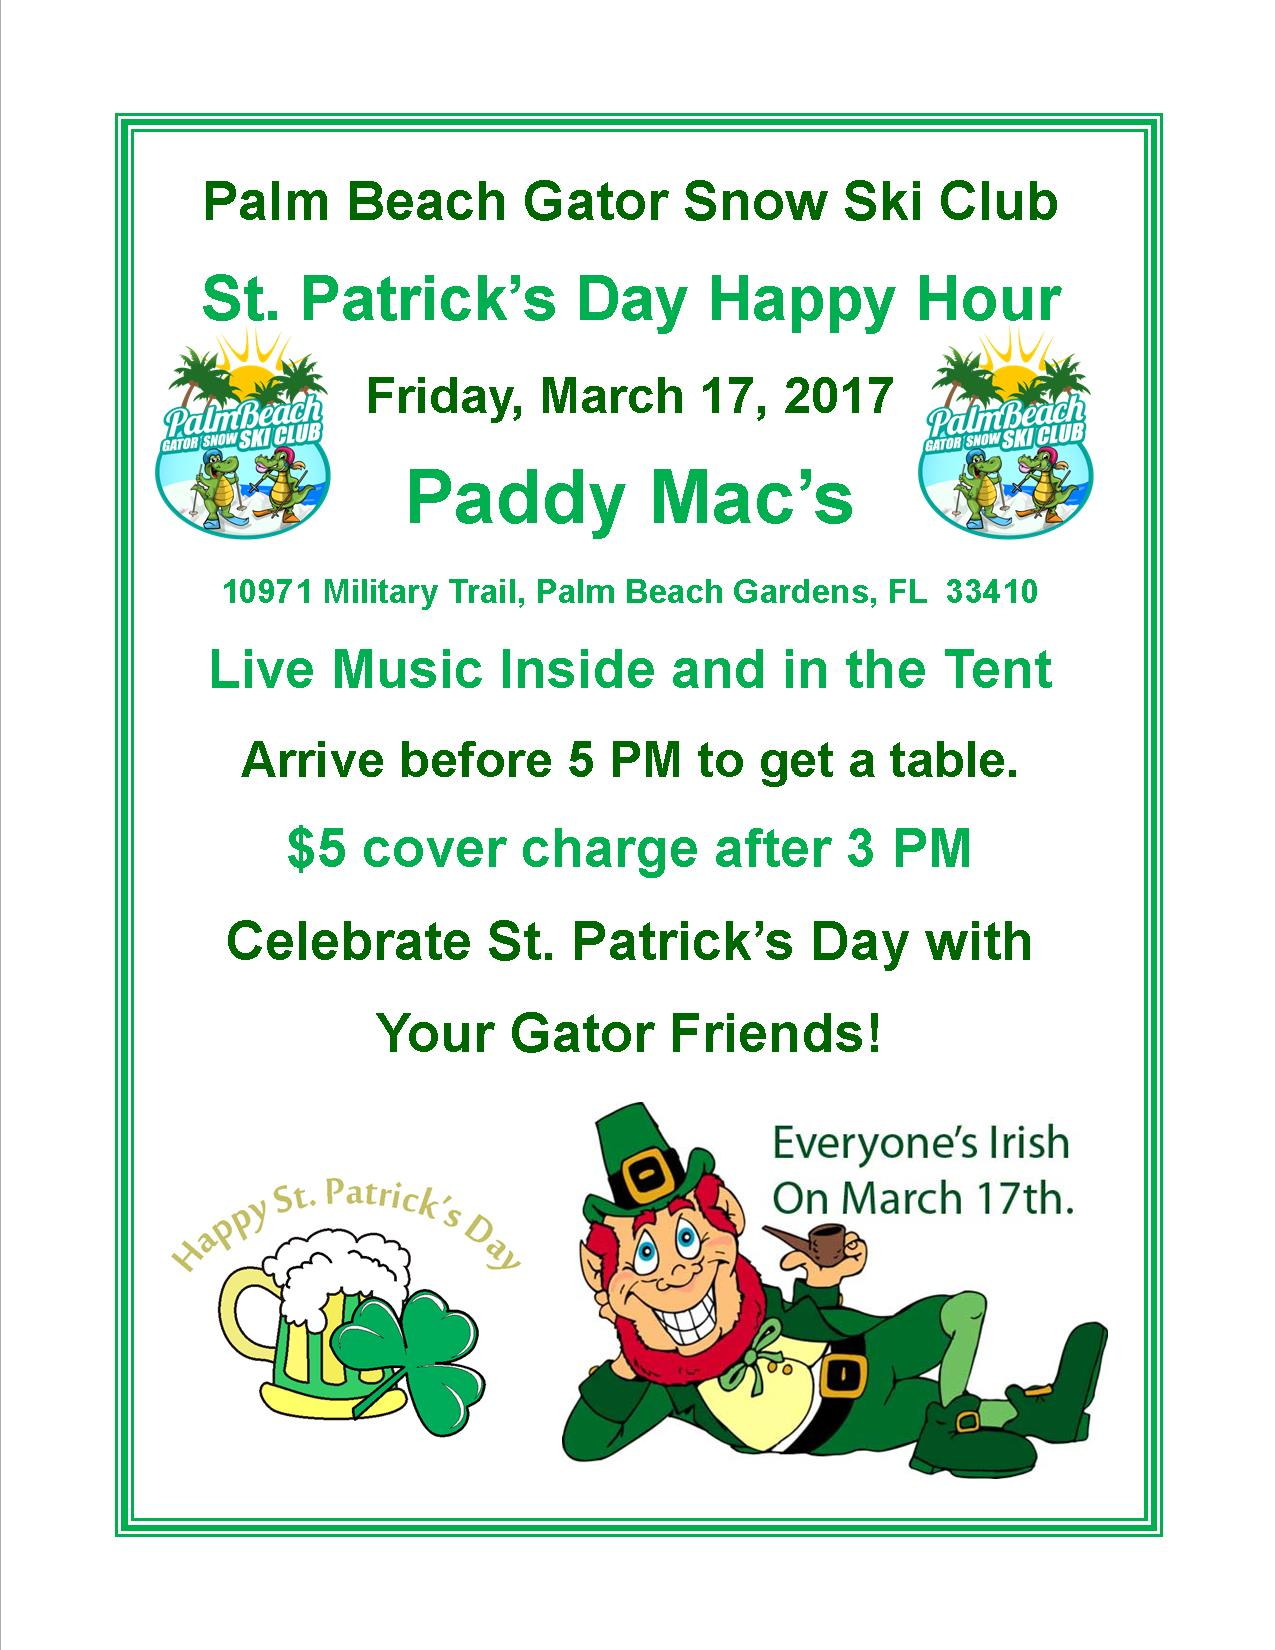 Palm beach gator snow ski club st patricks day happy hour at paddy macs St patrick s church palm beach gardens